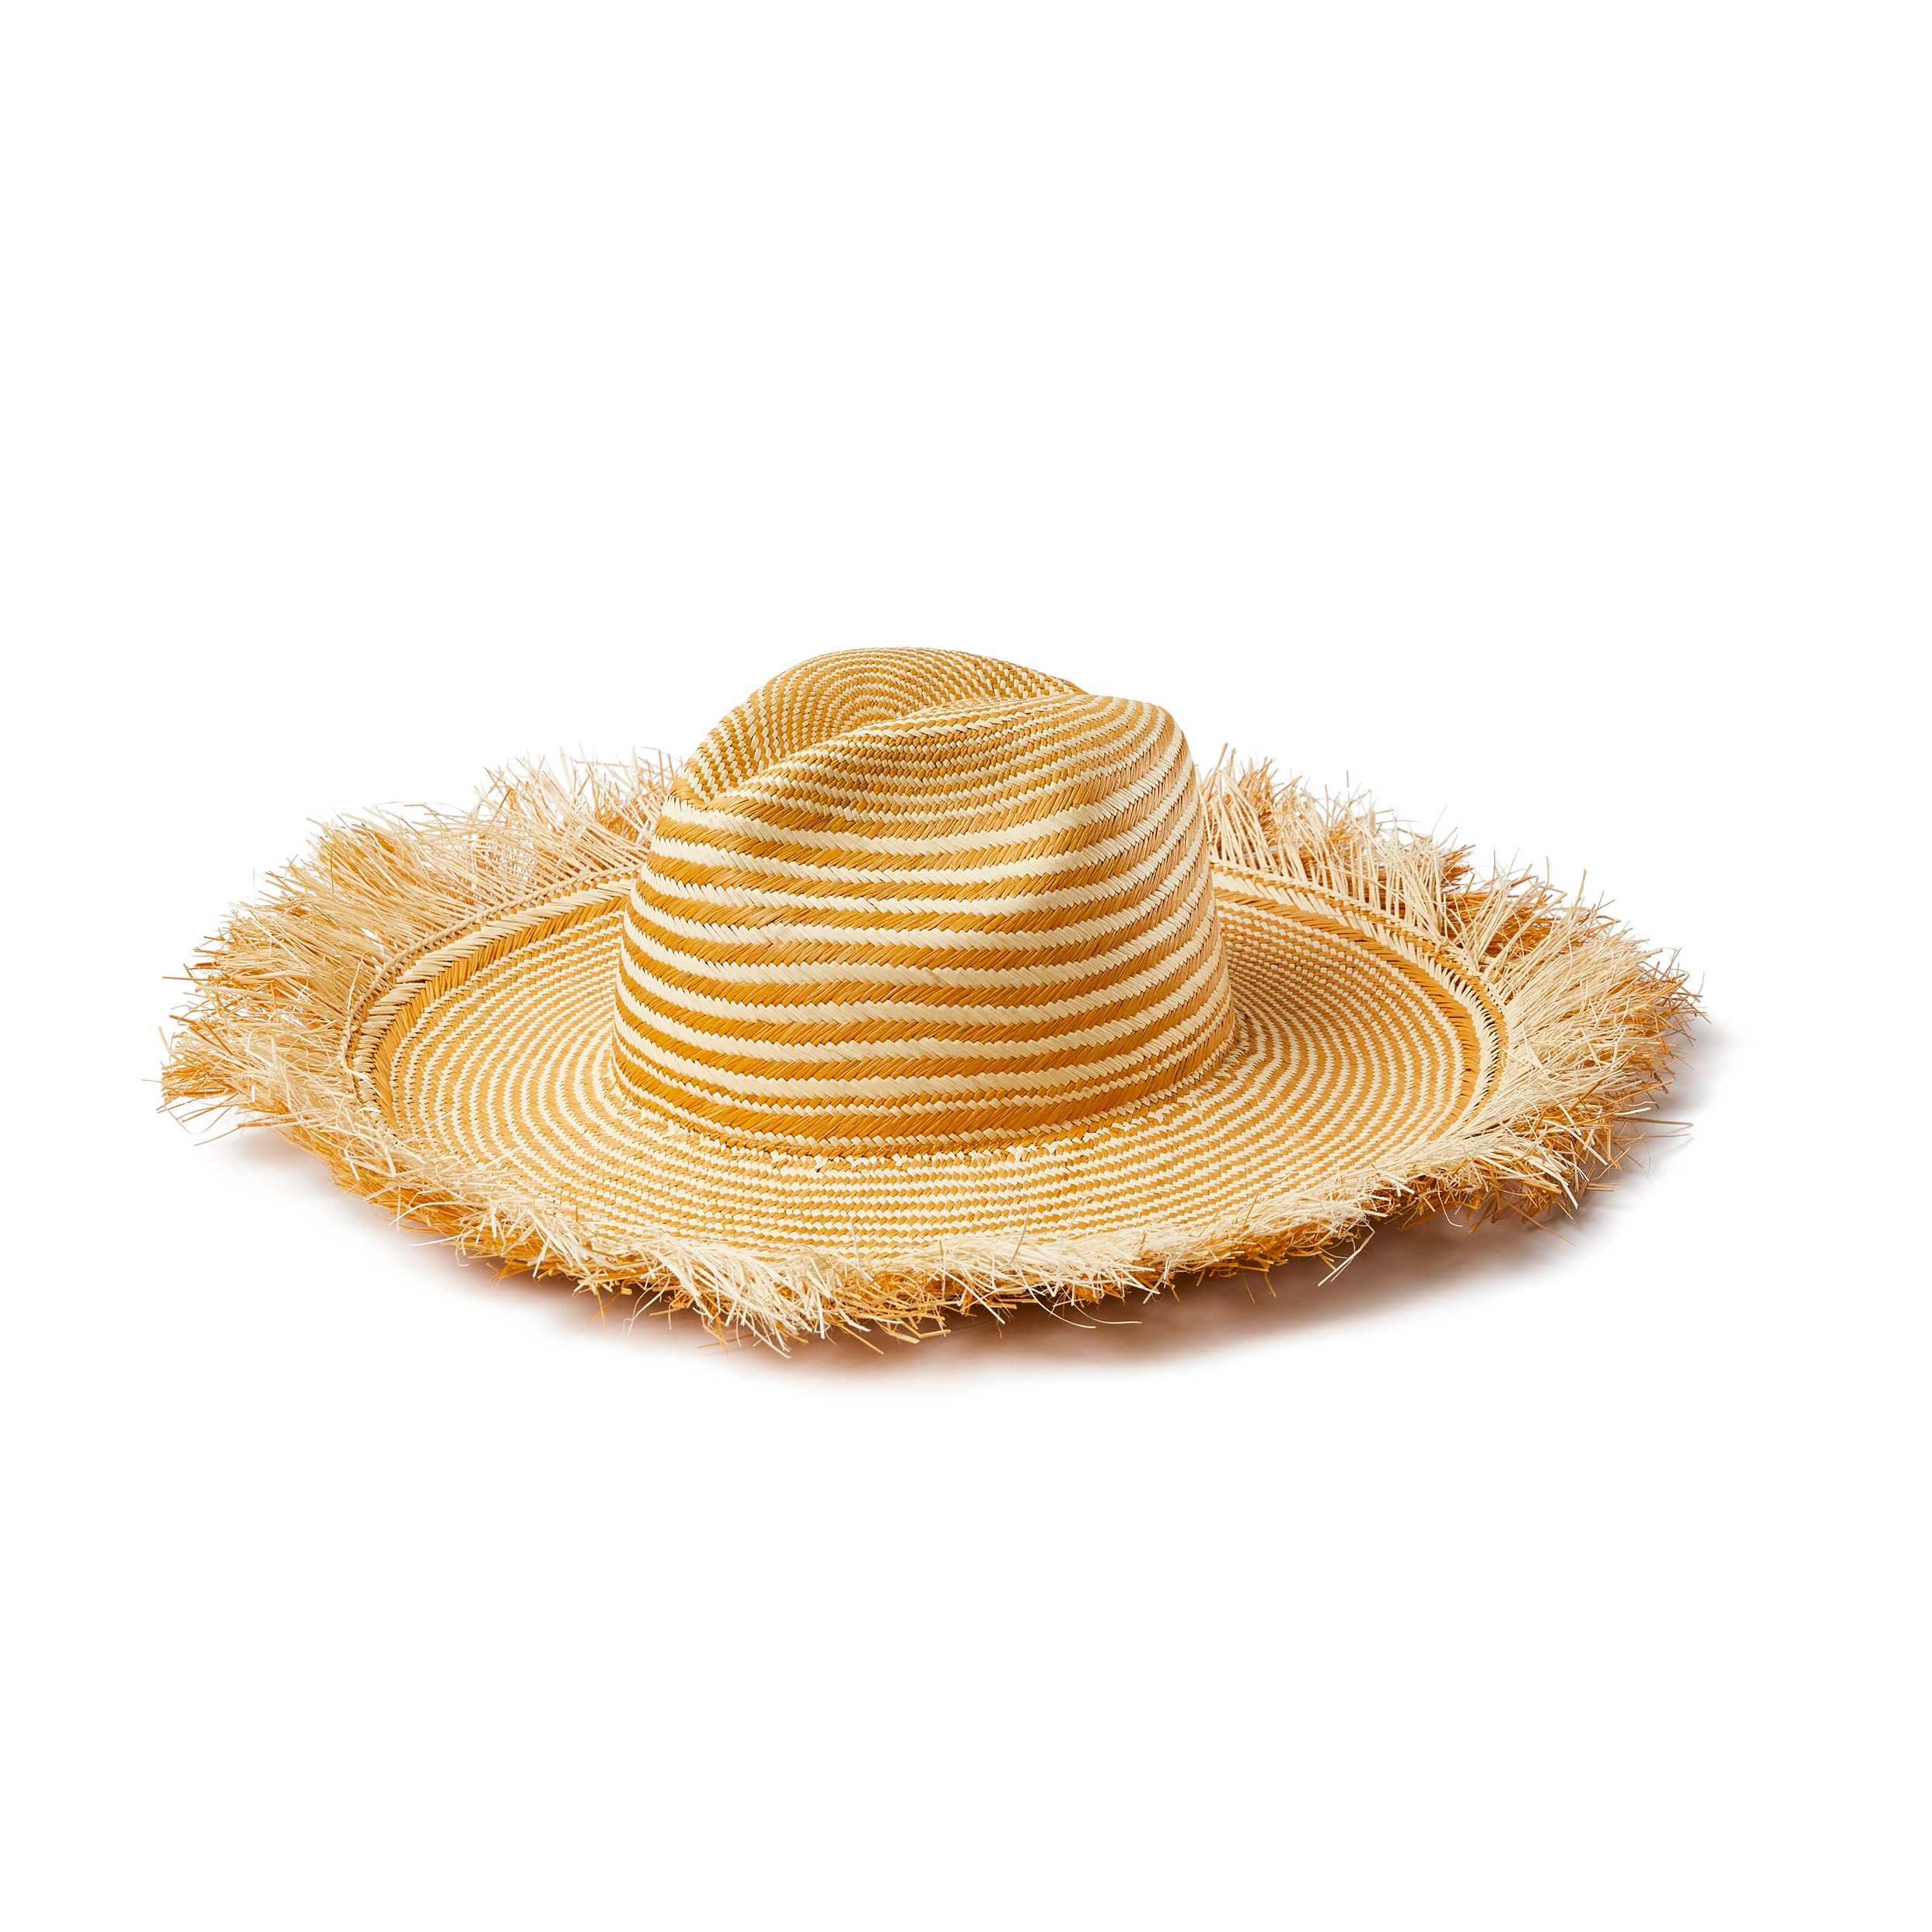 ee2d89420f9584 Bali toquilla straw hat – Golden Edit